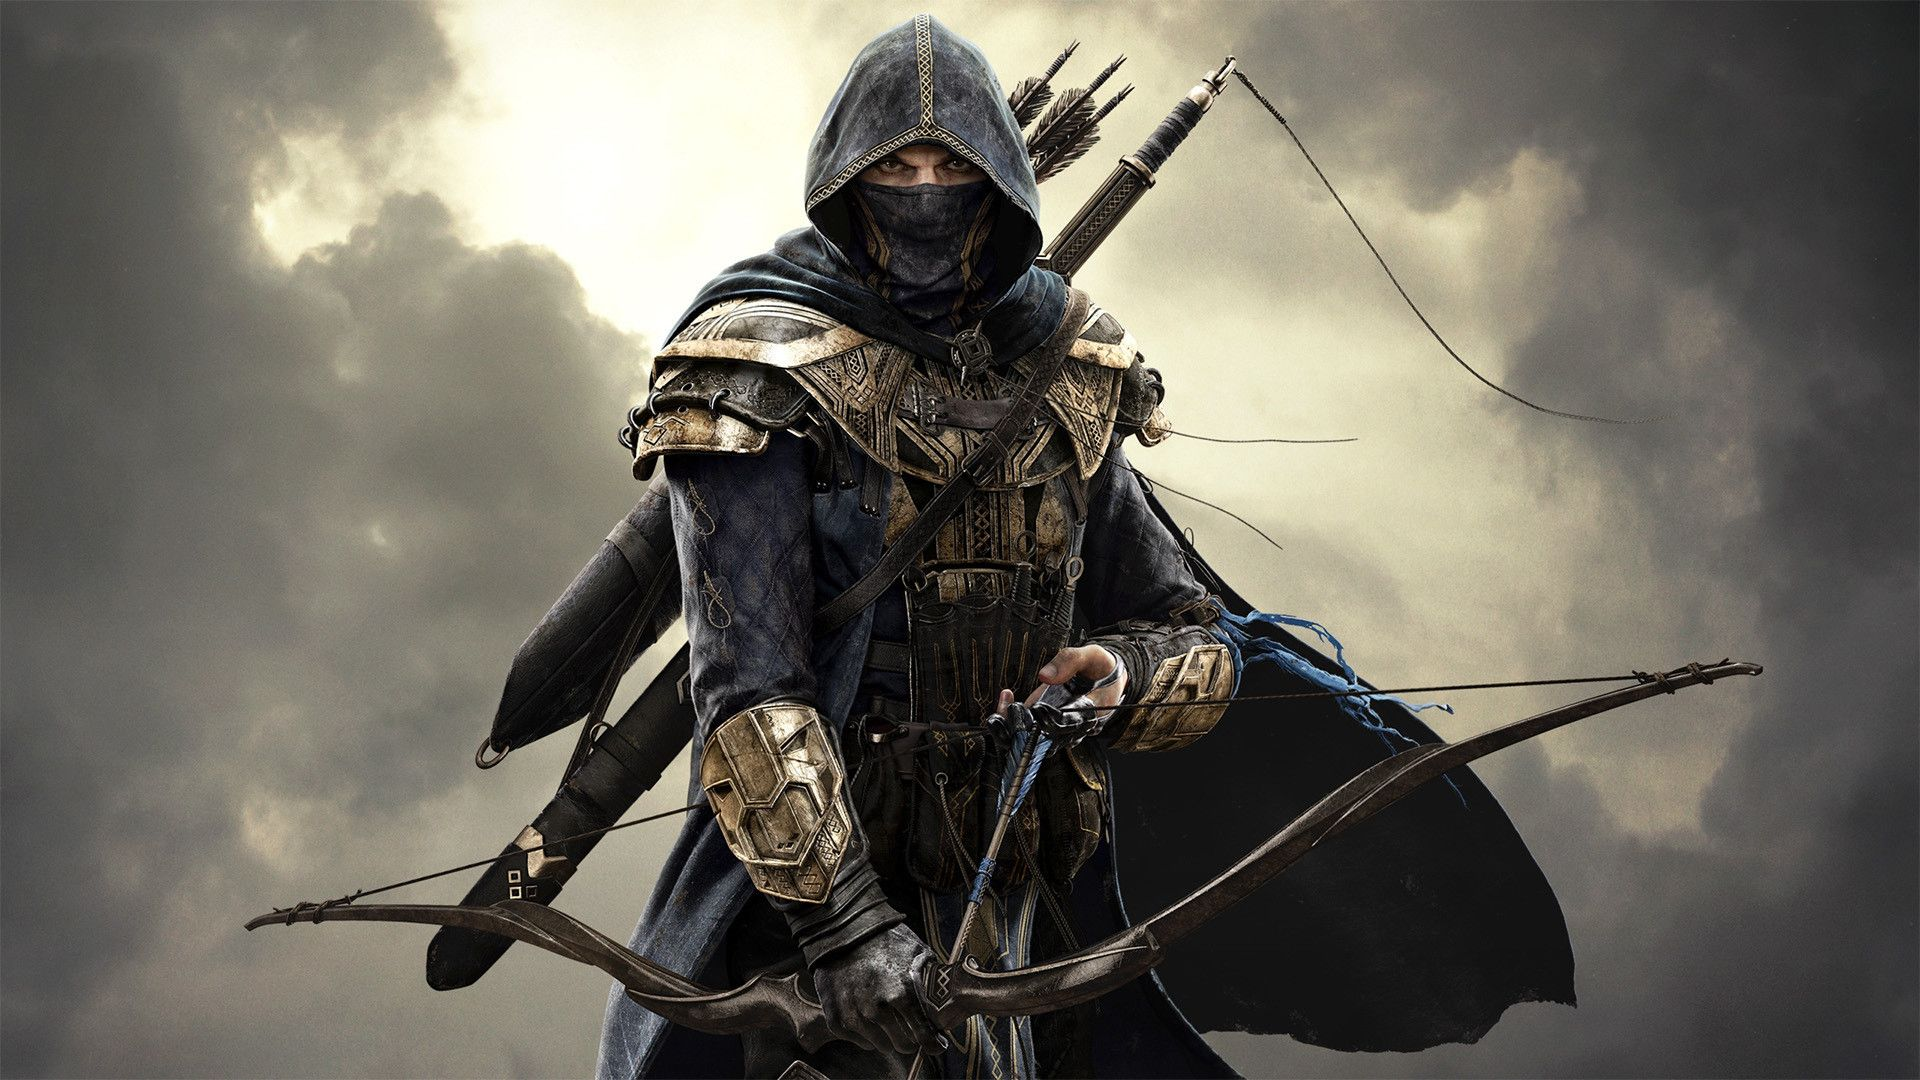 1920x1080 Game Wallpapers Hd Full Hd 1080p Games Wallpapers